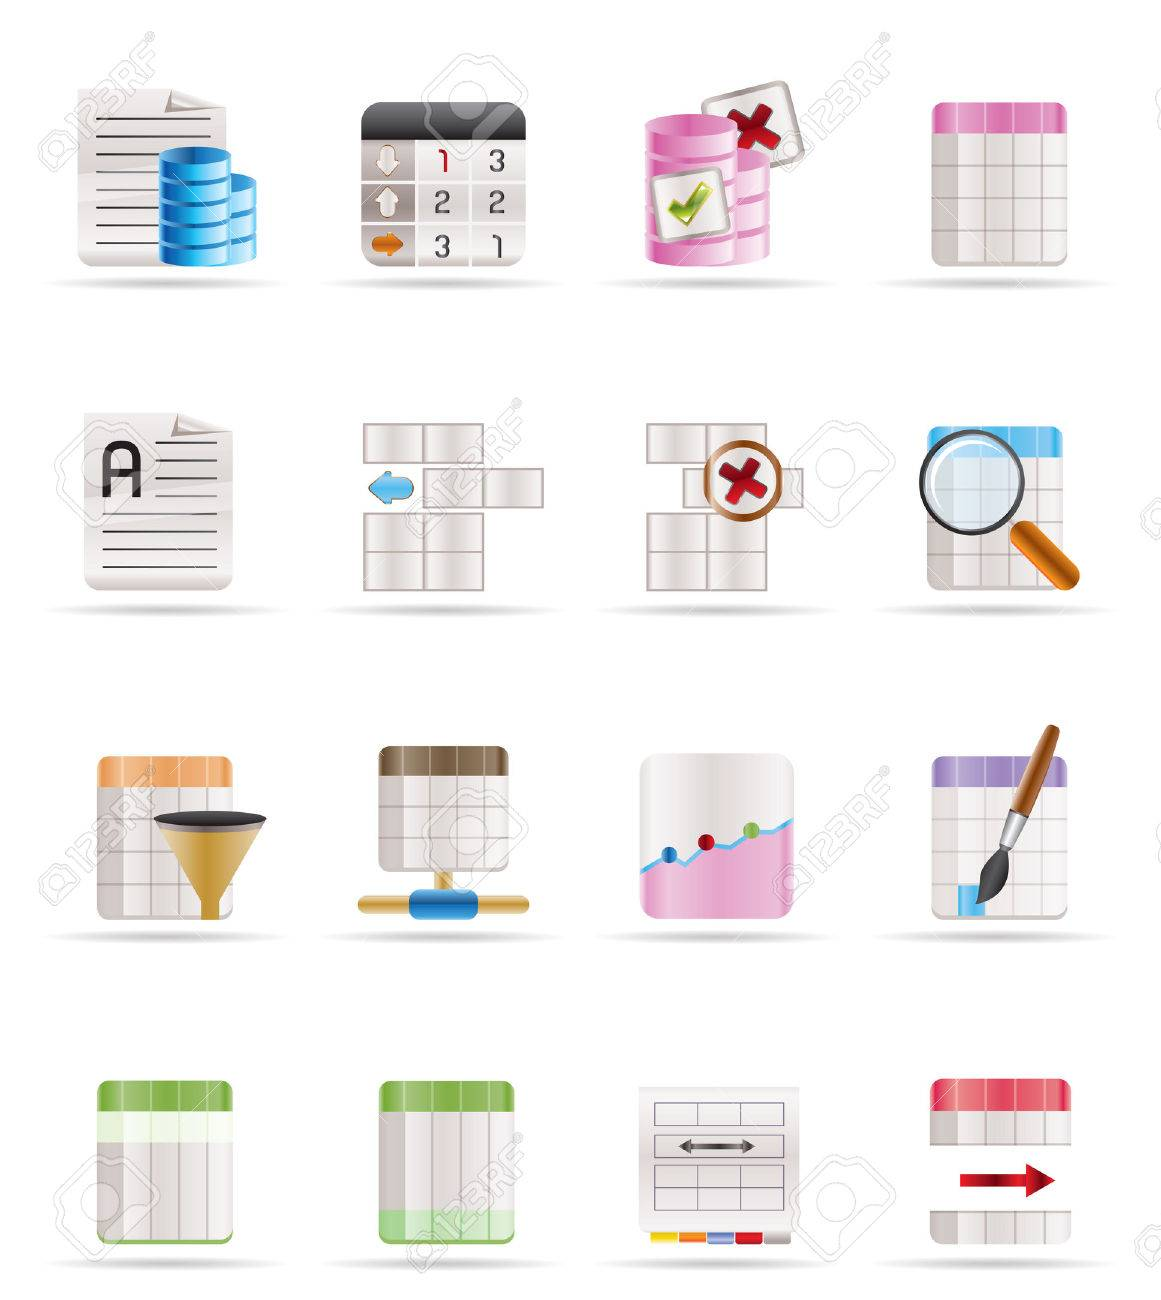 Database and Table Formatting Icons - Vector Icon Set Stock Vector - 4737062